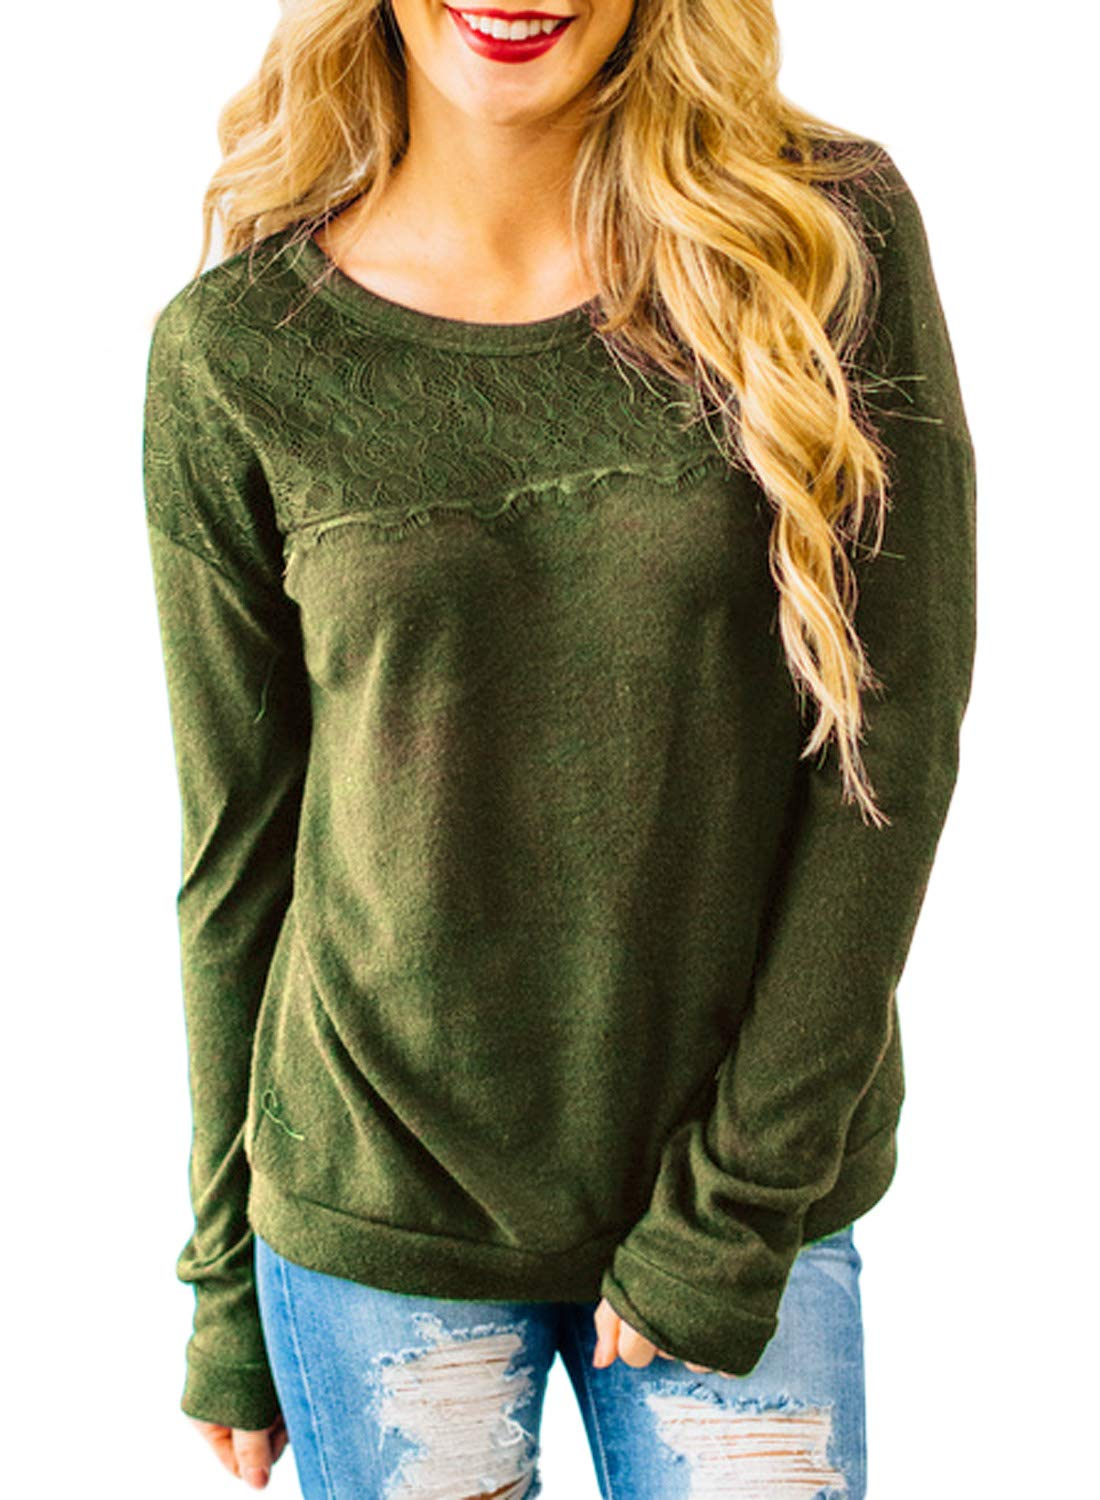 HOTAPEI Women's Crewneck Sweatshirts Pullover Lace Solid Long Sleeve Loose Casual Shirts Blouses and Tops Olive Green Medium